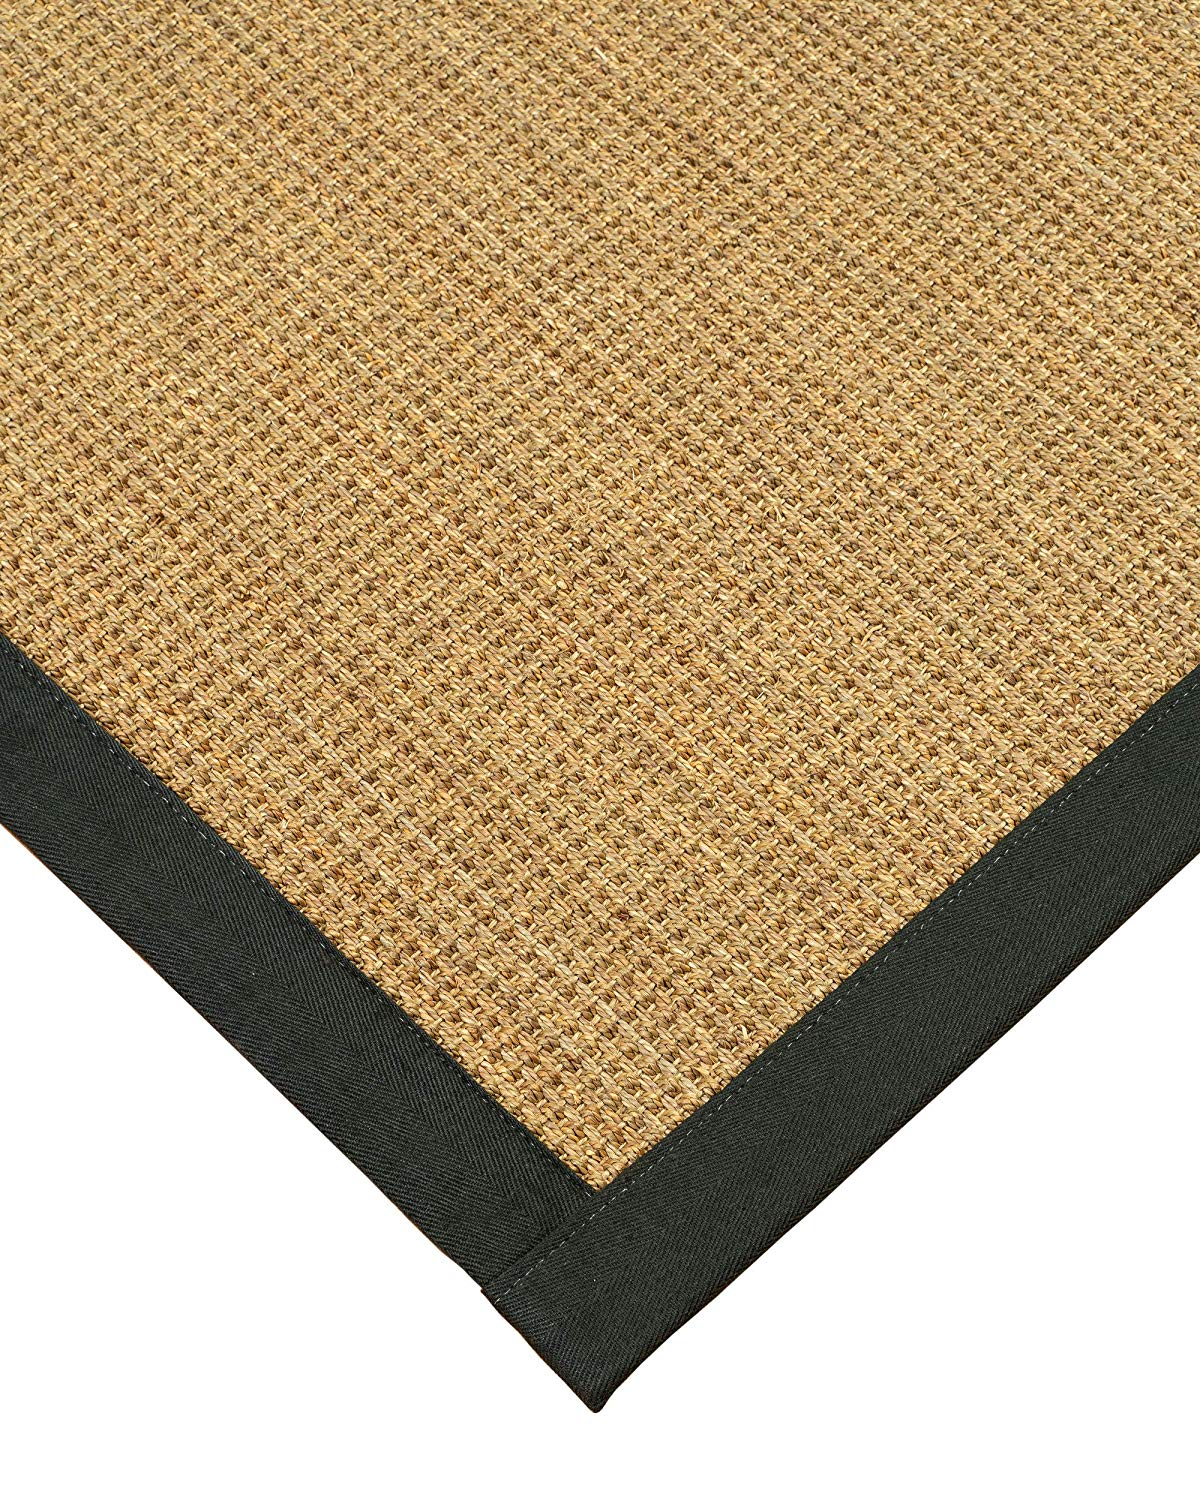 Get Quotations Hamptons Seagr Runner Rug With Extra Wide Binding Moss 31 Inches X 13